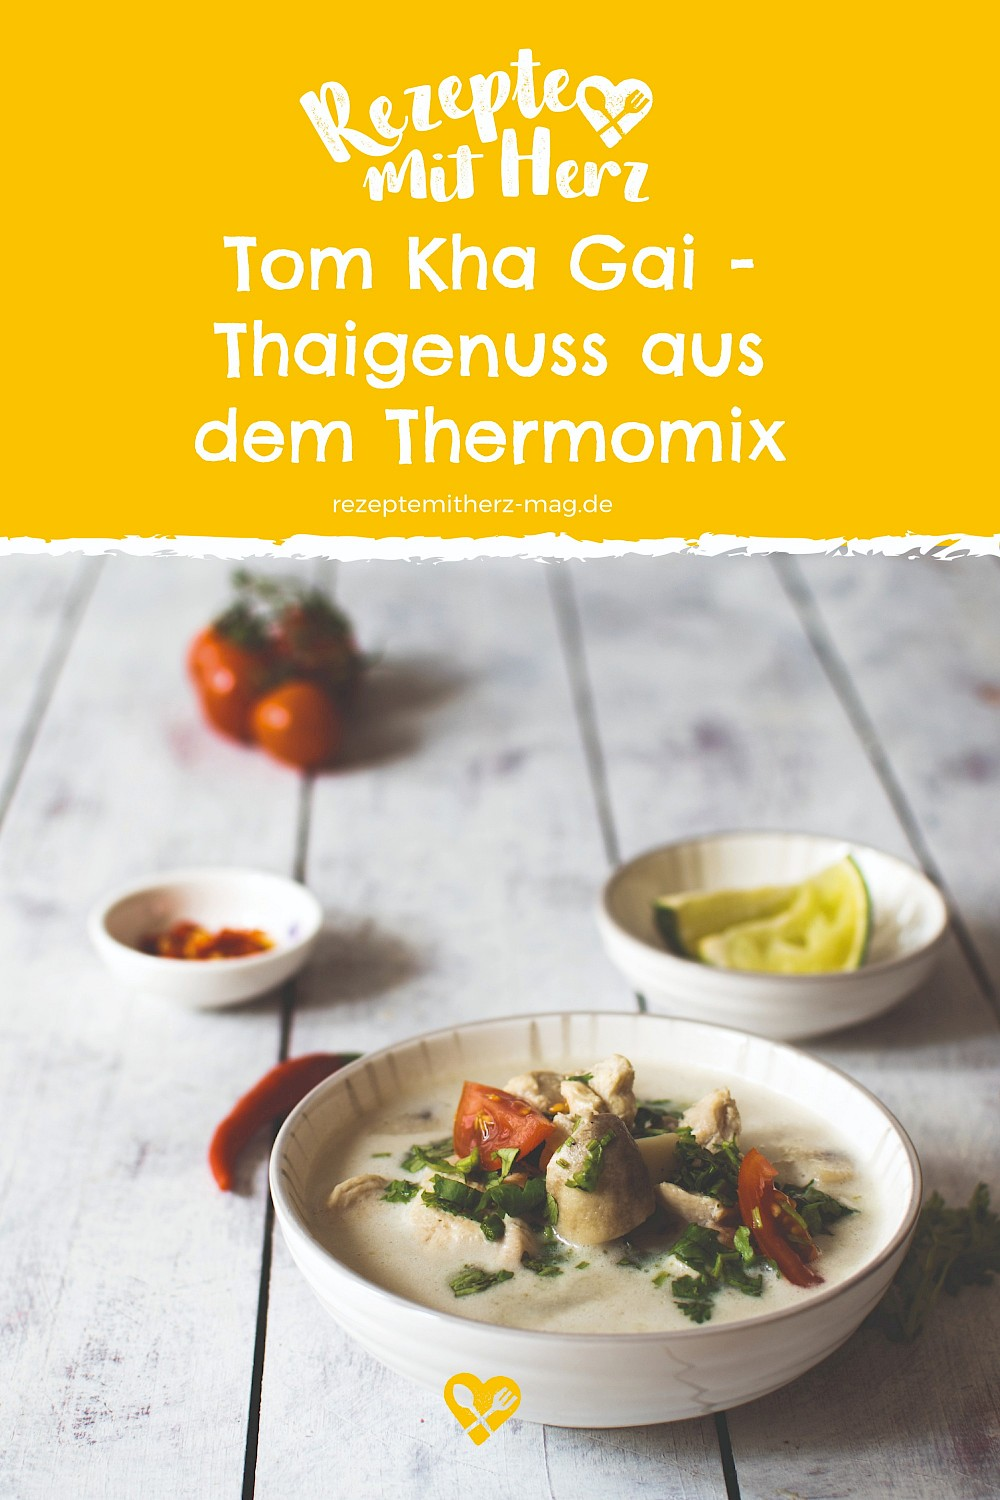 Tom Kha Gai - Thermomix-Rezept